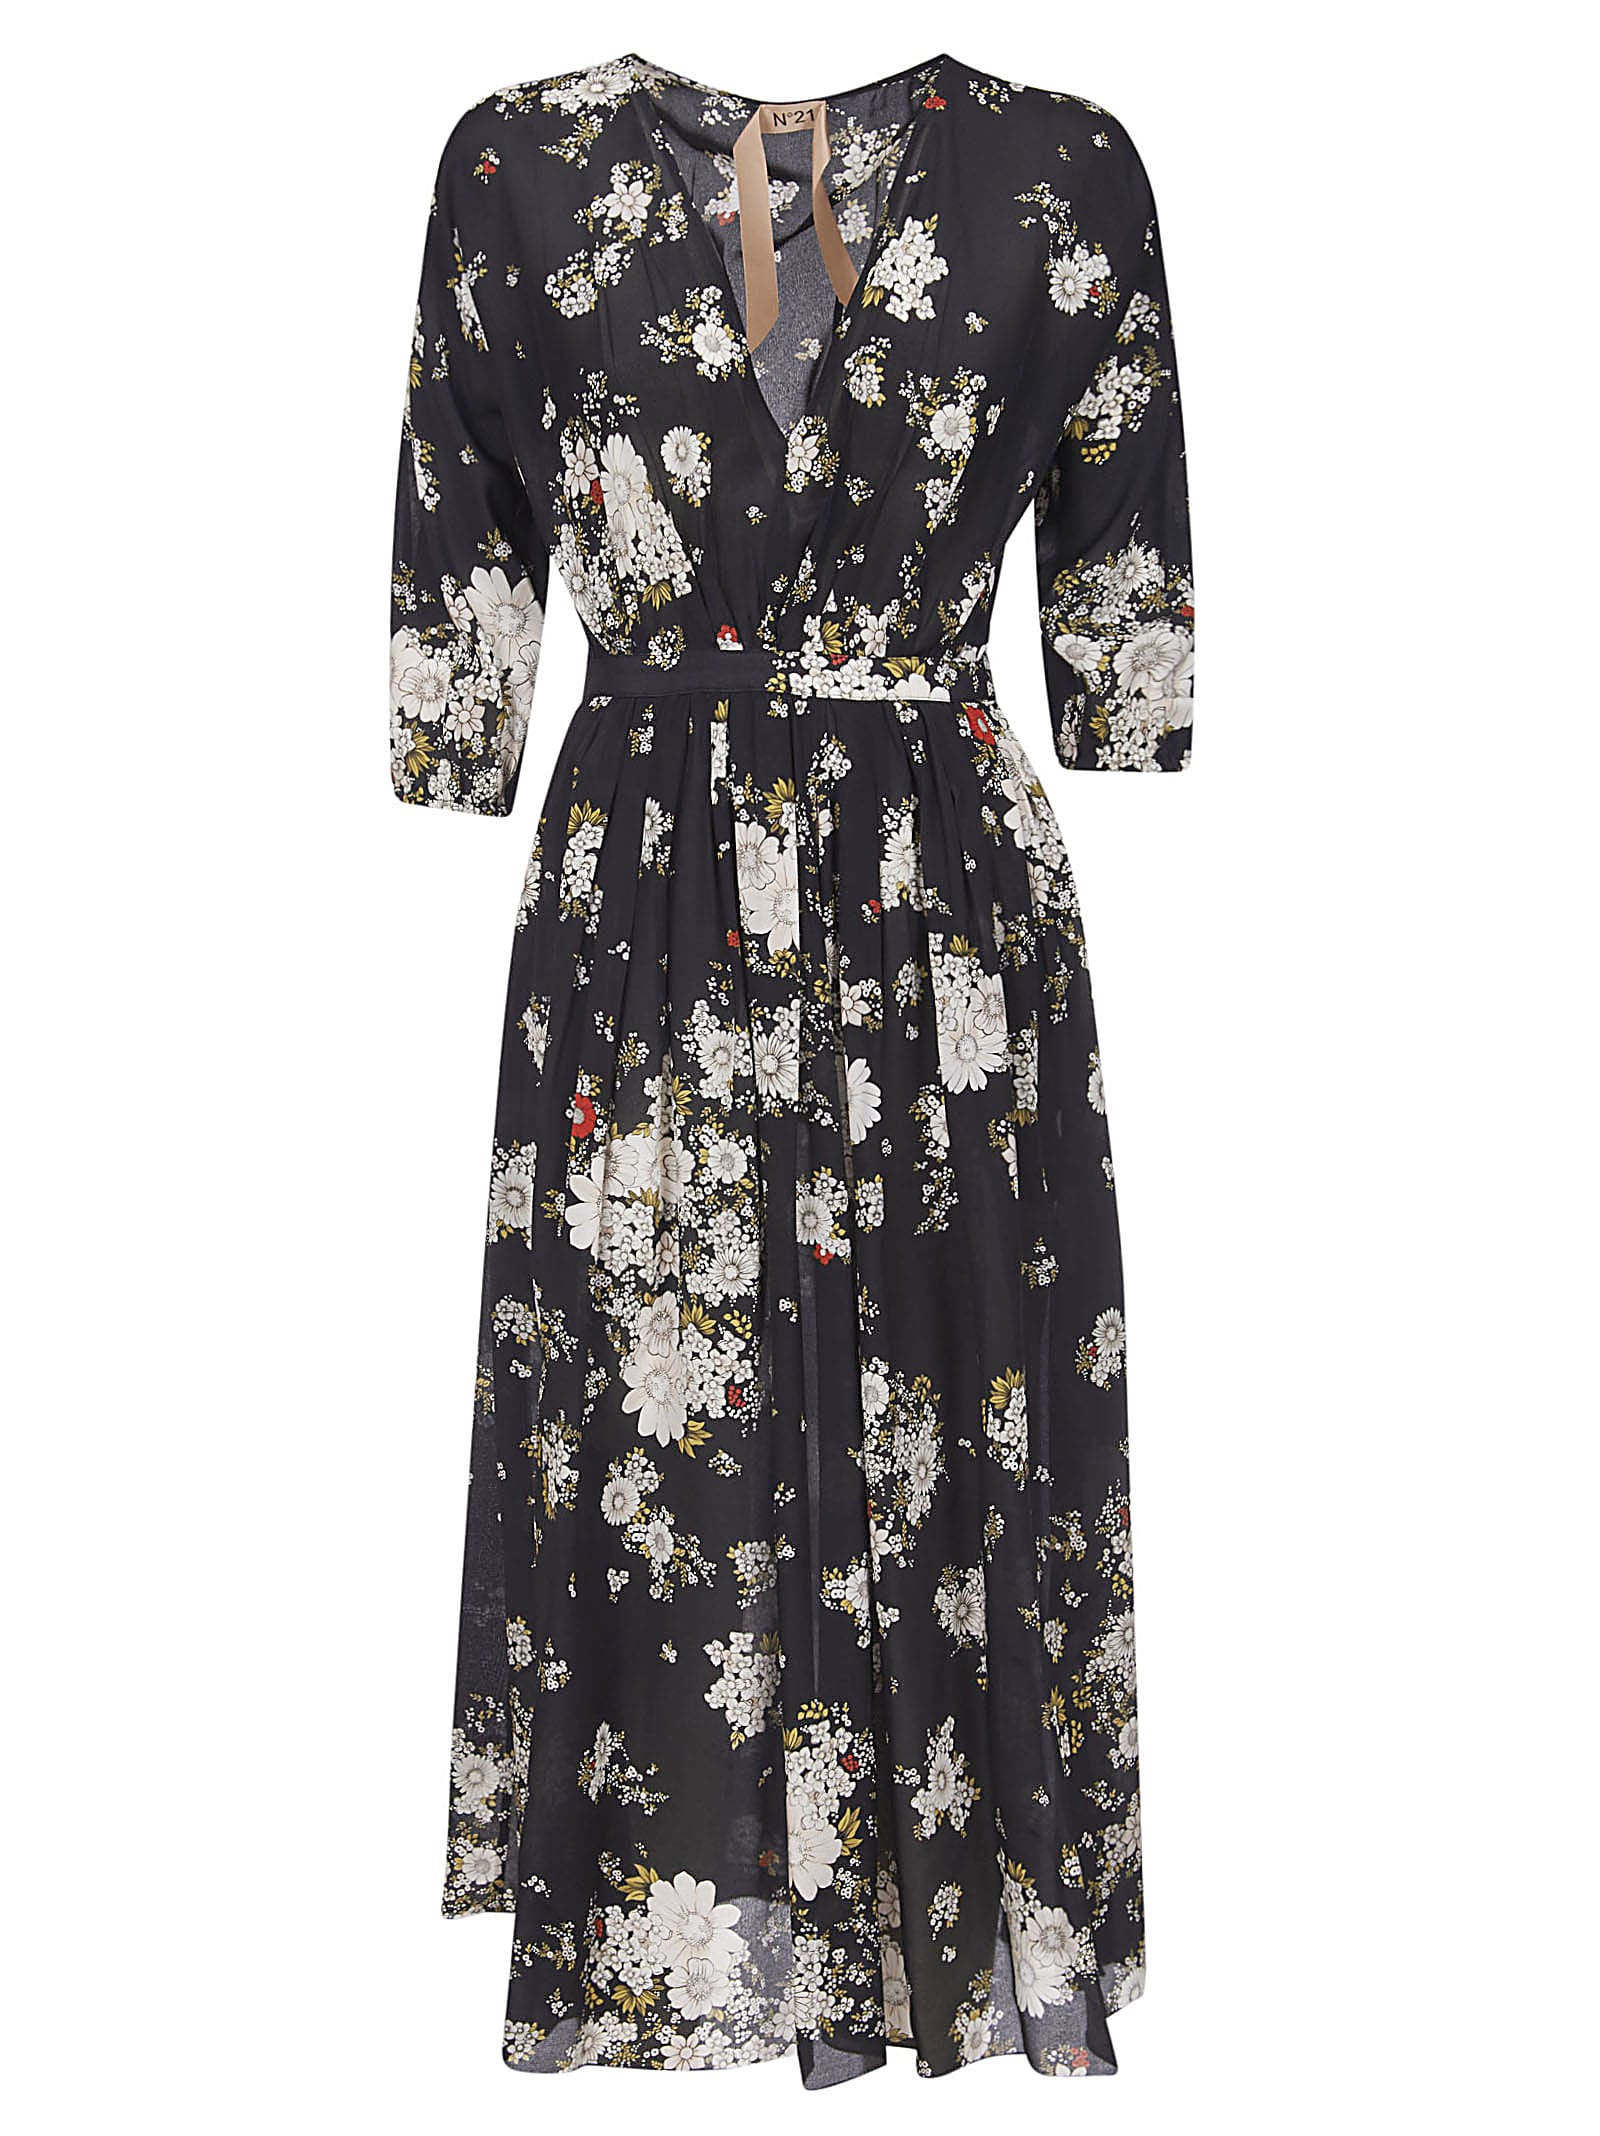 Buy N.21 Floral Print Dress online, shop N.21 with free shipping